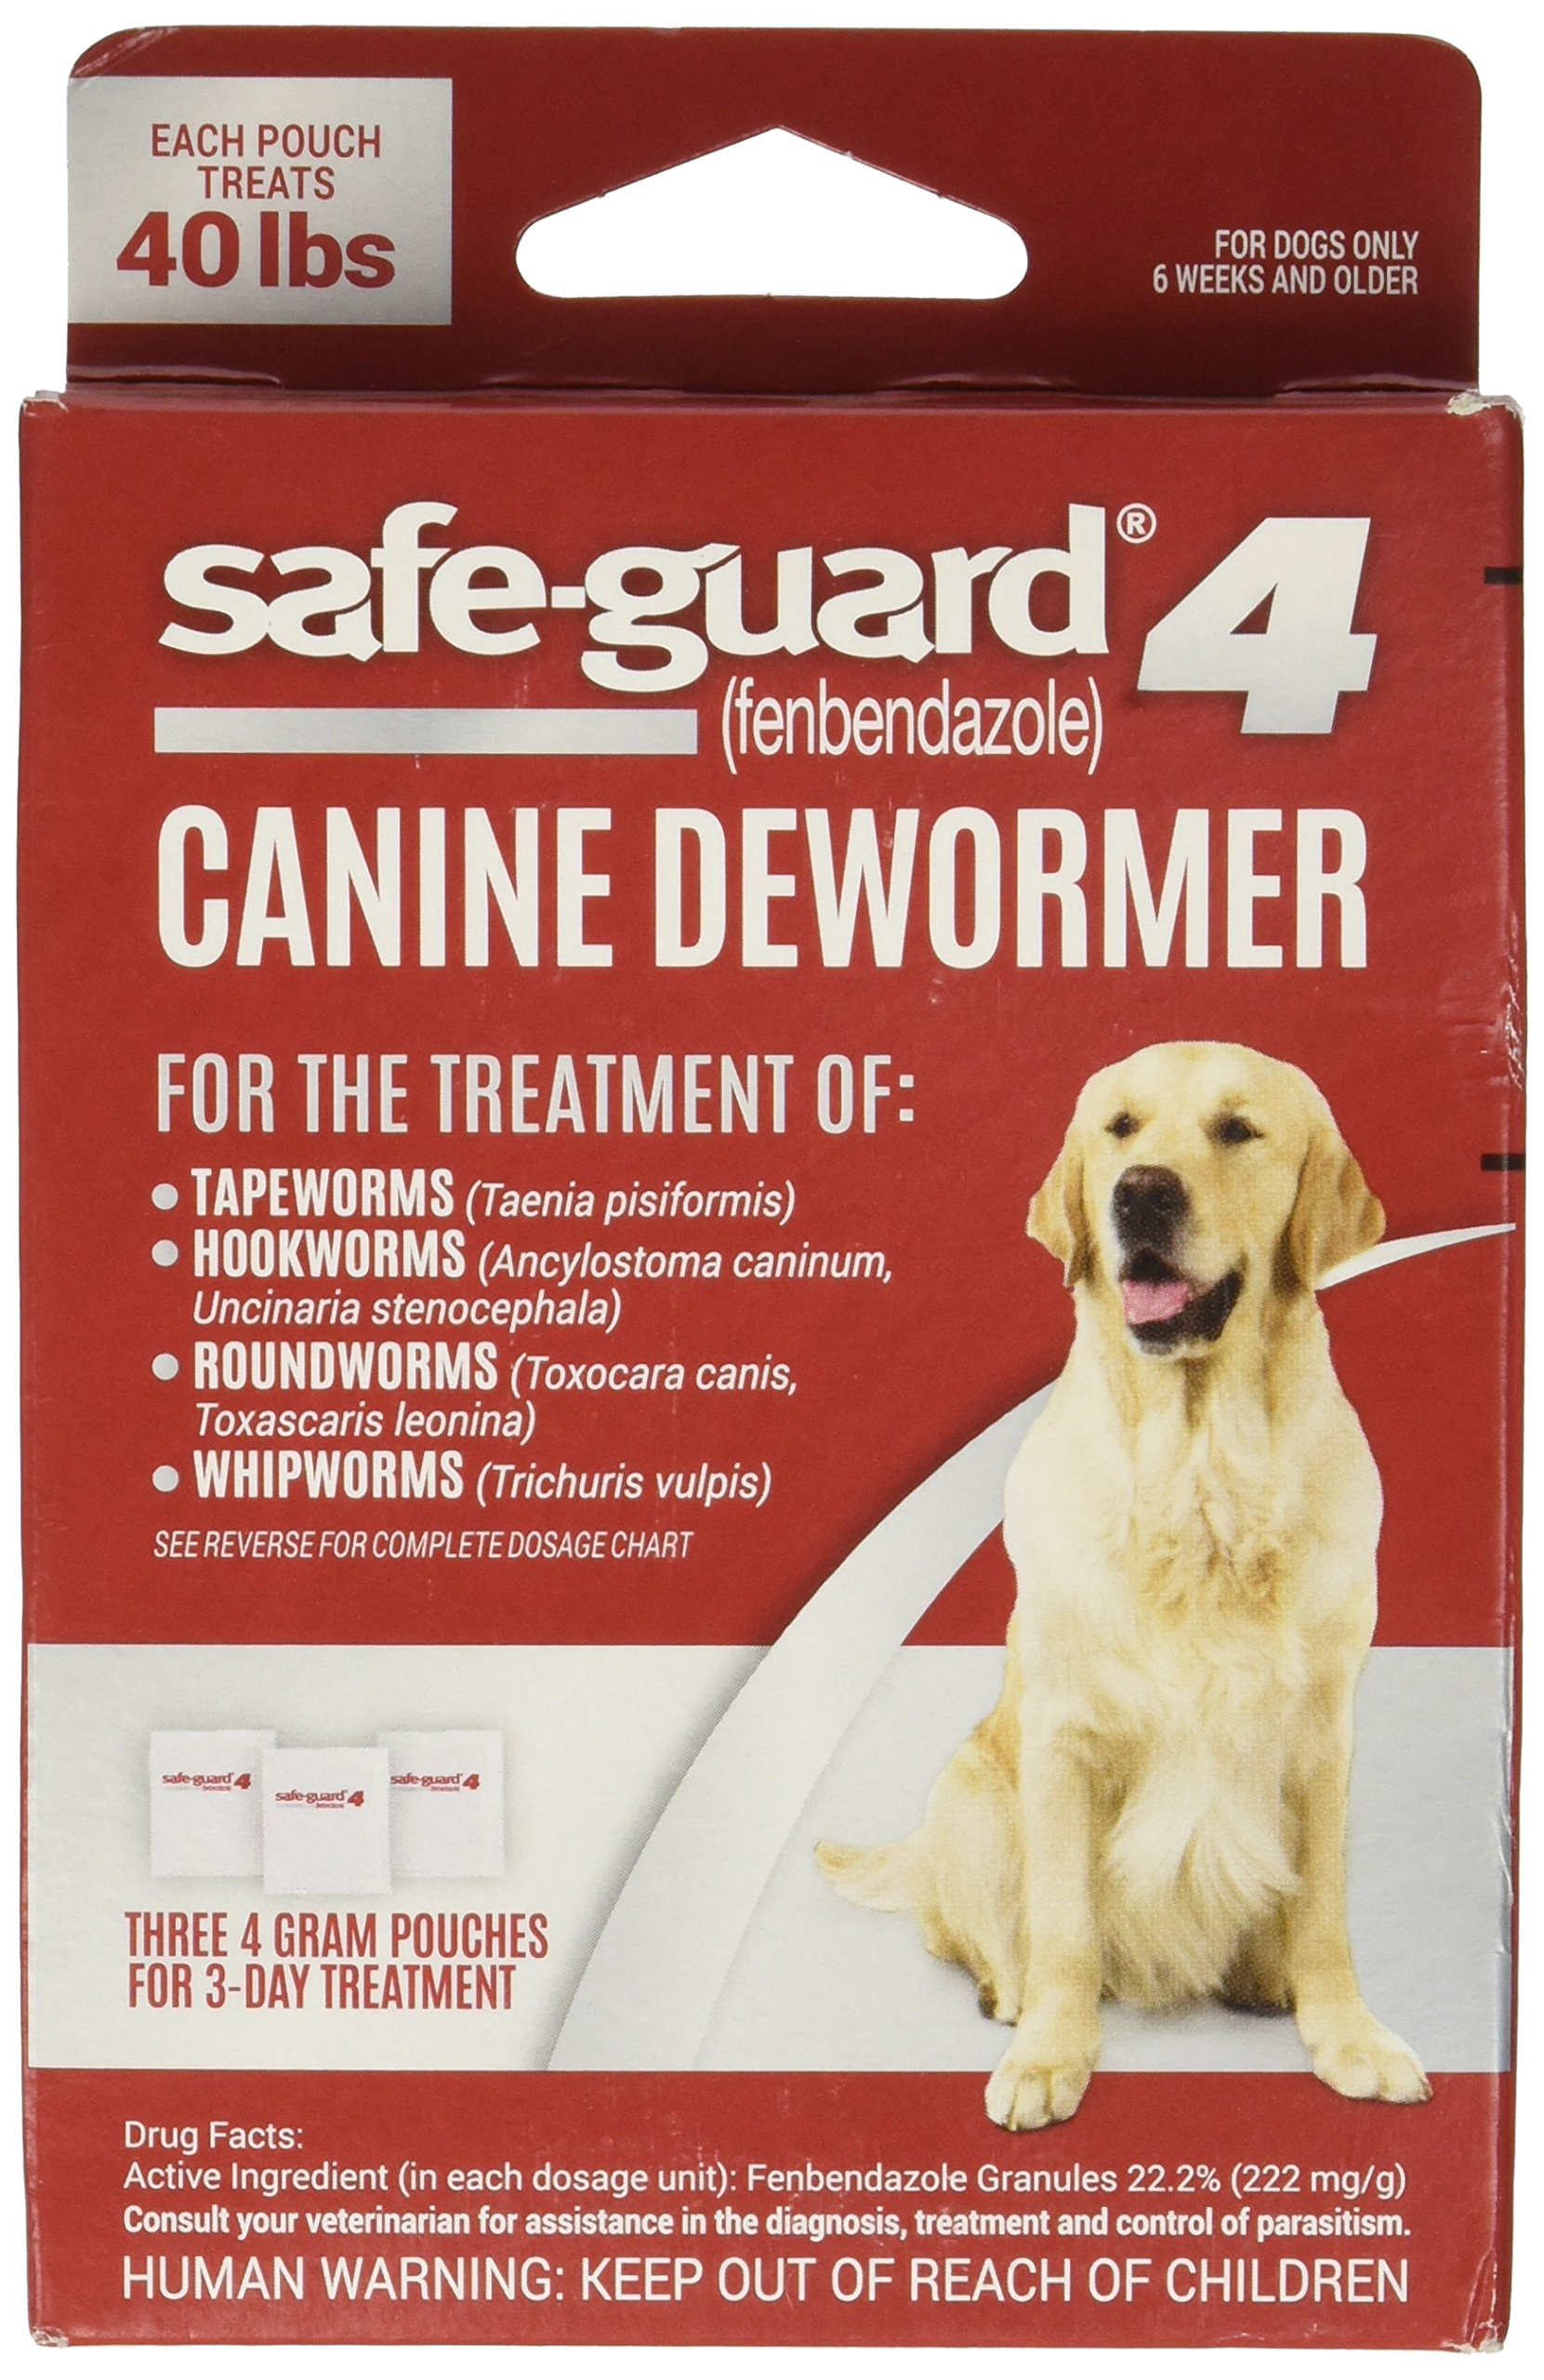 UPG - COMPANION ANIMAL Eio Wormer Safeguard 4 Lg Dog by UPG - COMPANION ANIMAL